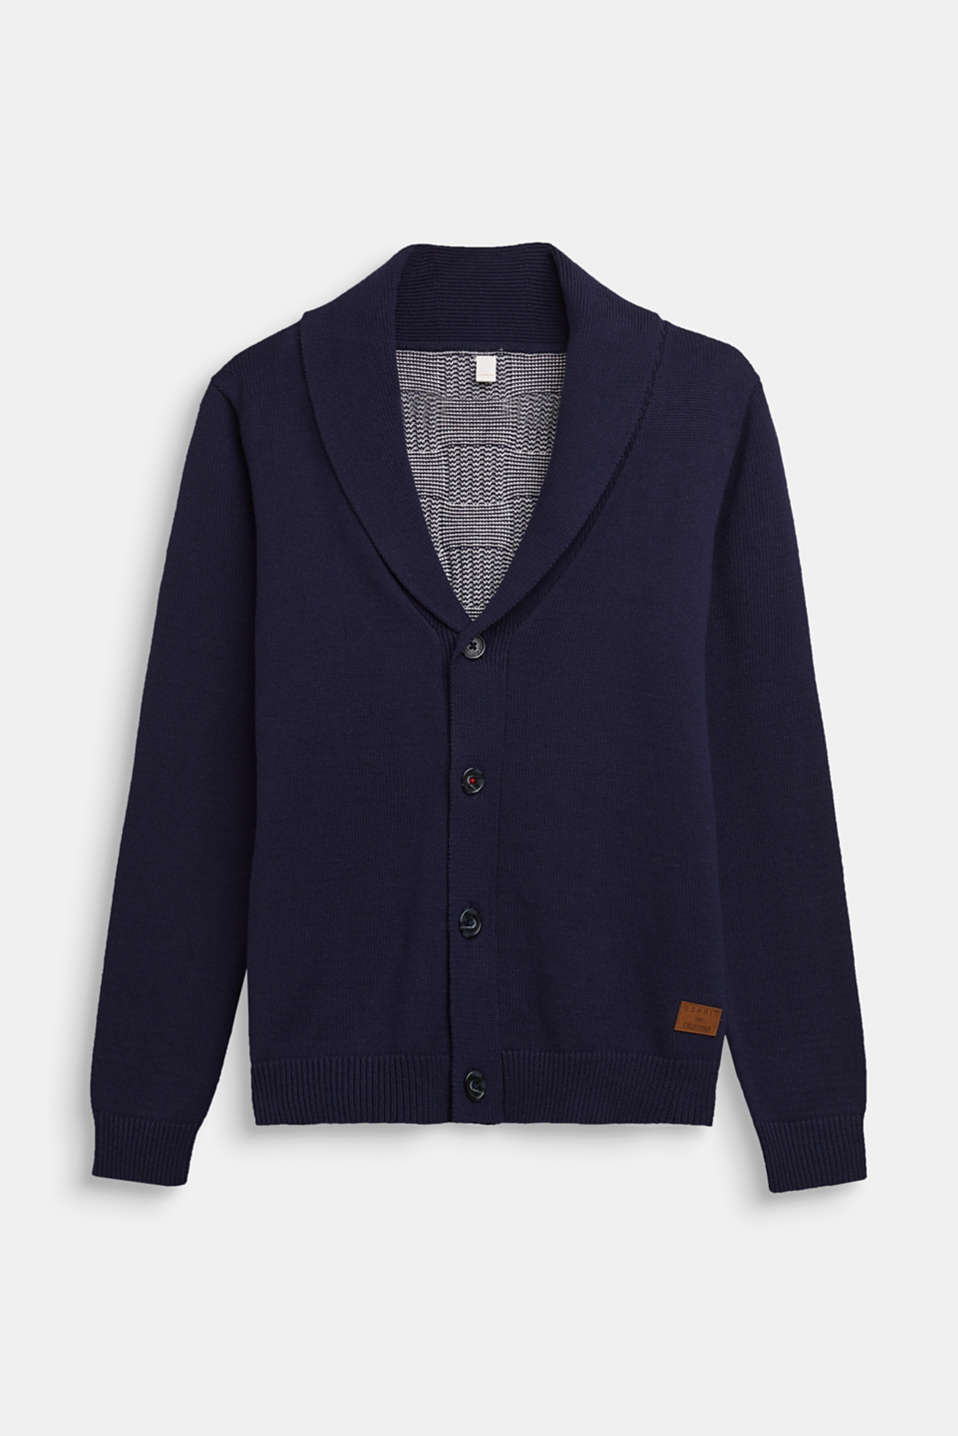 Esprit - Cardigan with a check pattern, 100% cotton